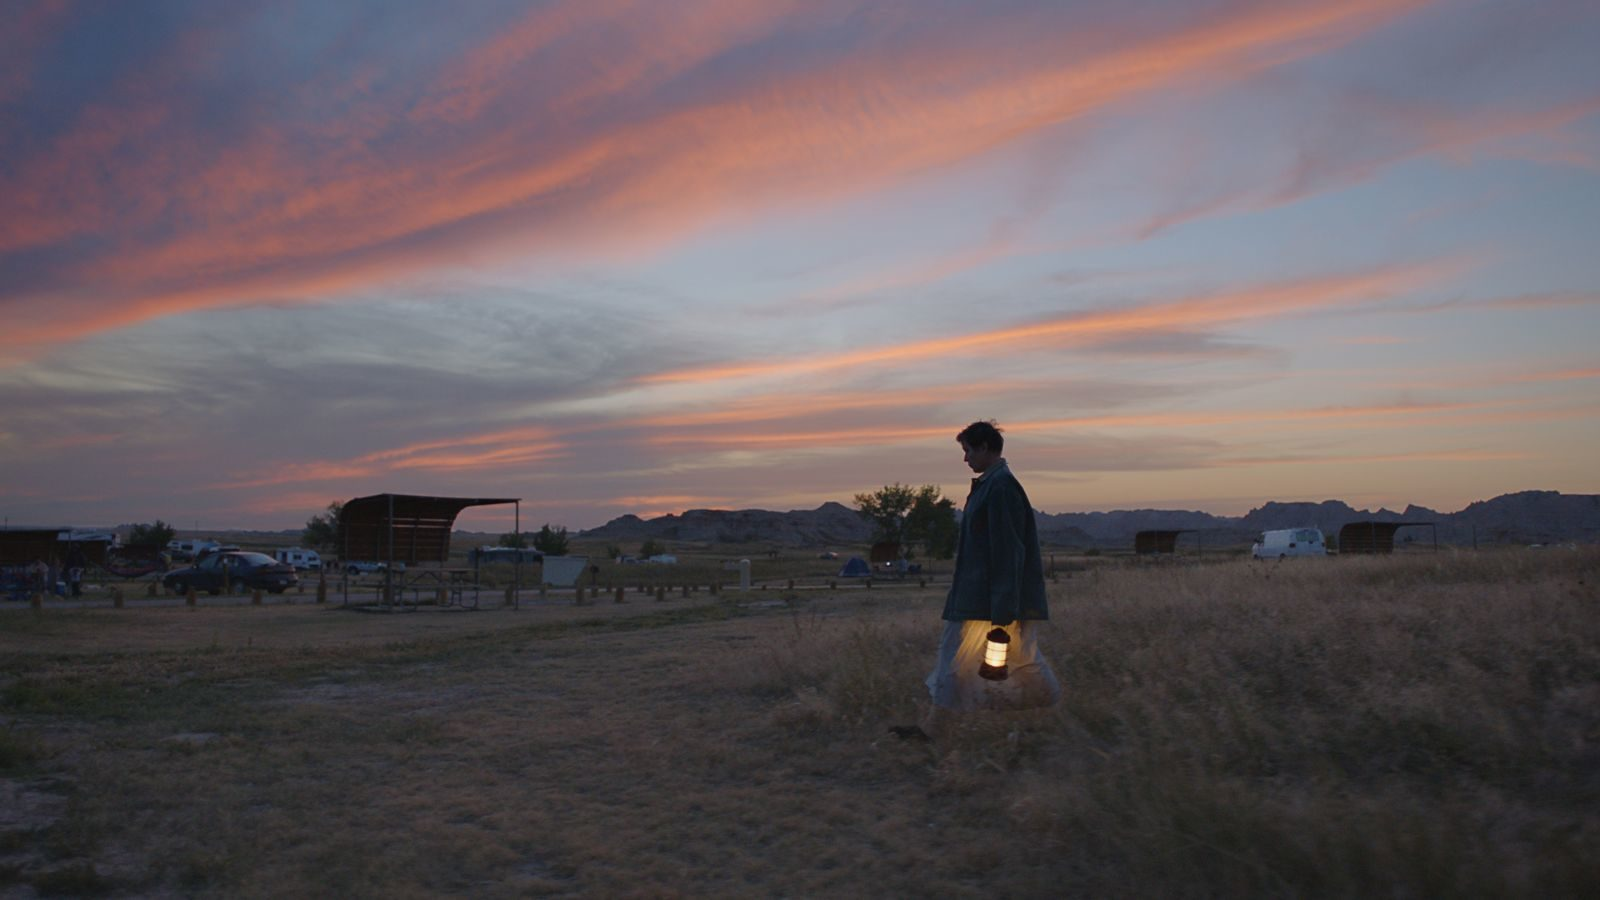 Frances McDormand wanders with a lantern in Chloe Zhao's film Nomadland